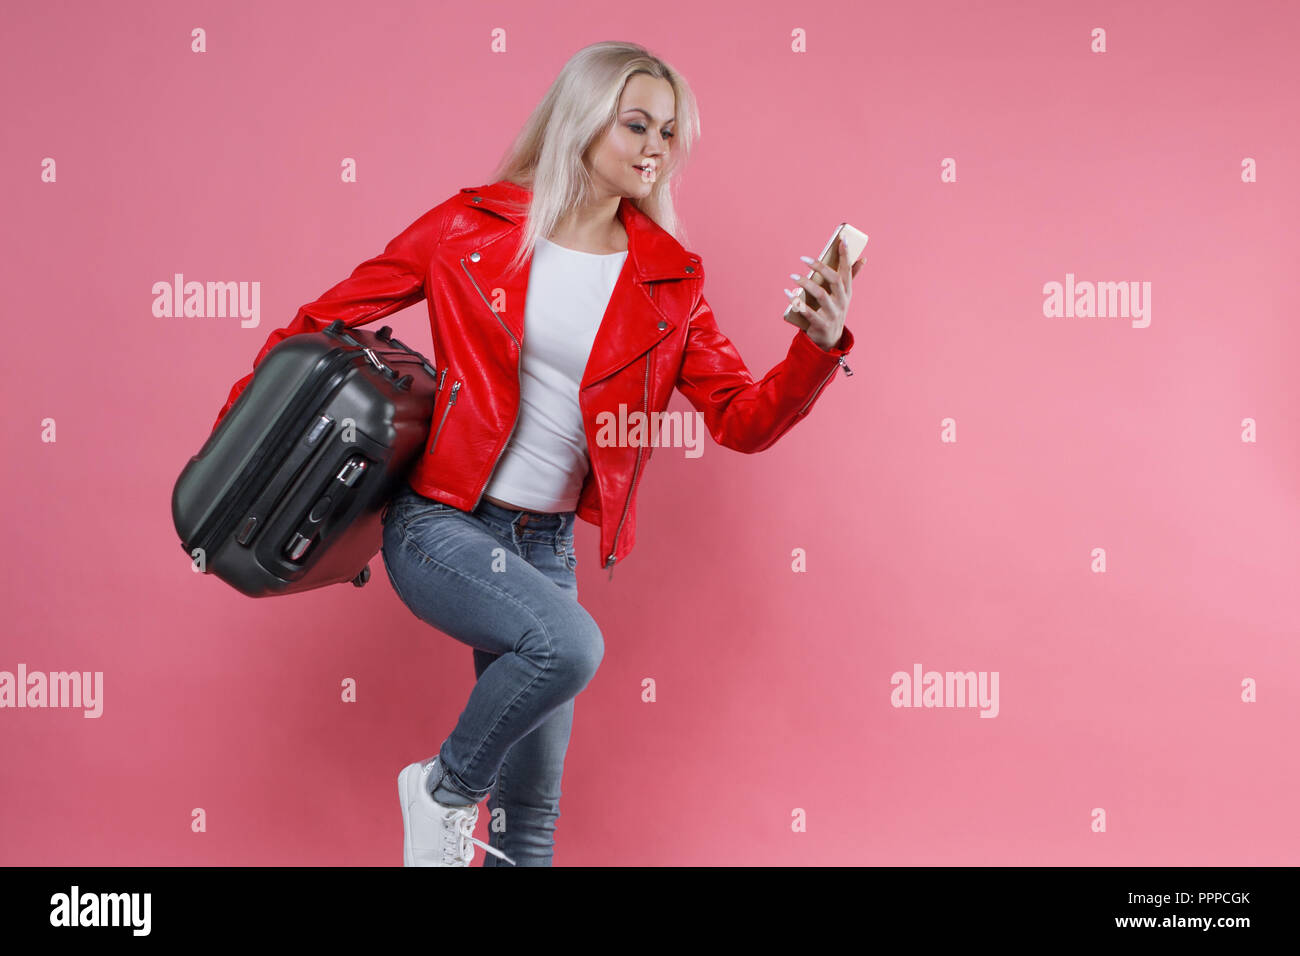 Luggage Girl Road De Stock amp; Imágenes Blonde On 4w54zq